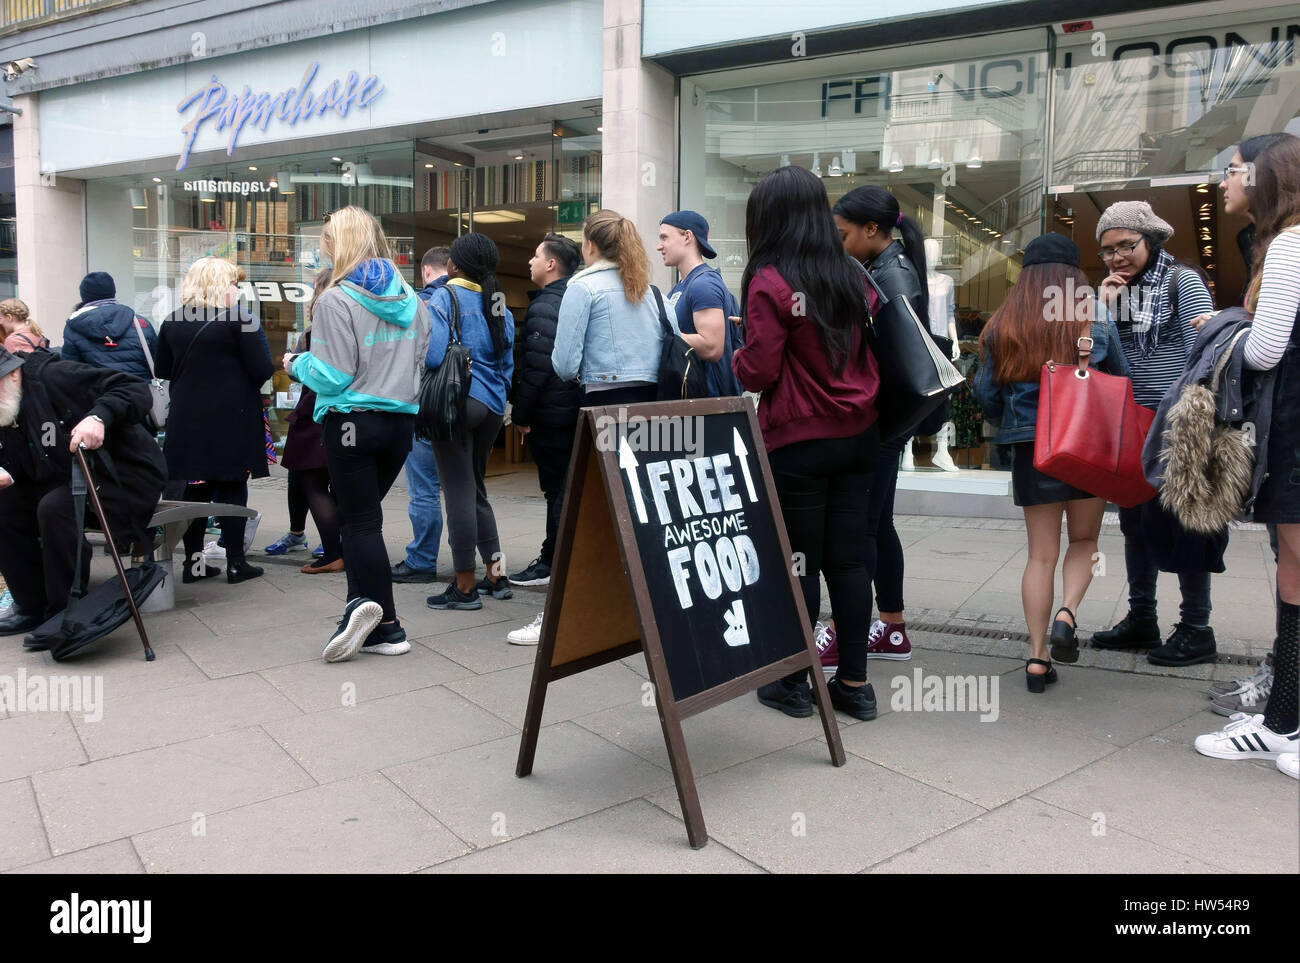 People queue for free food in Deliveroo promotion in North London shopping centre - Stock Image